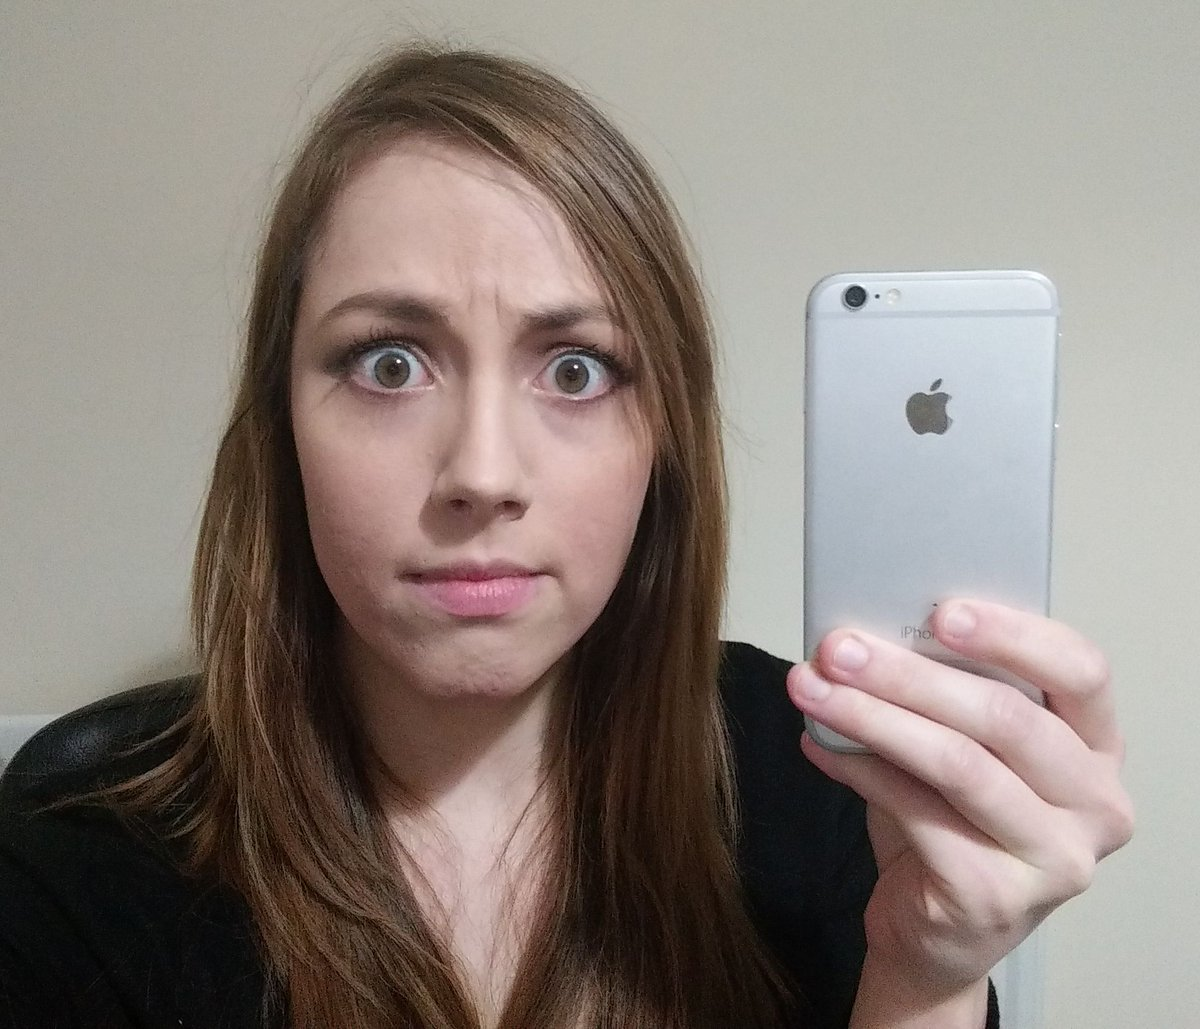 We made die-hard Android fan @hollybrocks use an iPhone 6 for a month. Here's how it went... http://t.co/iHR9vzu5sT http://t.co/JSkvEbD0i2